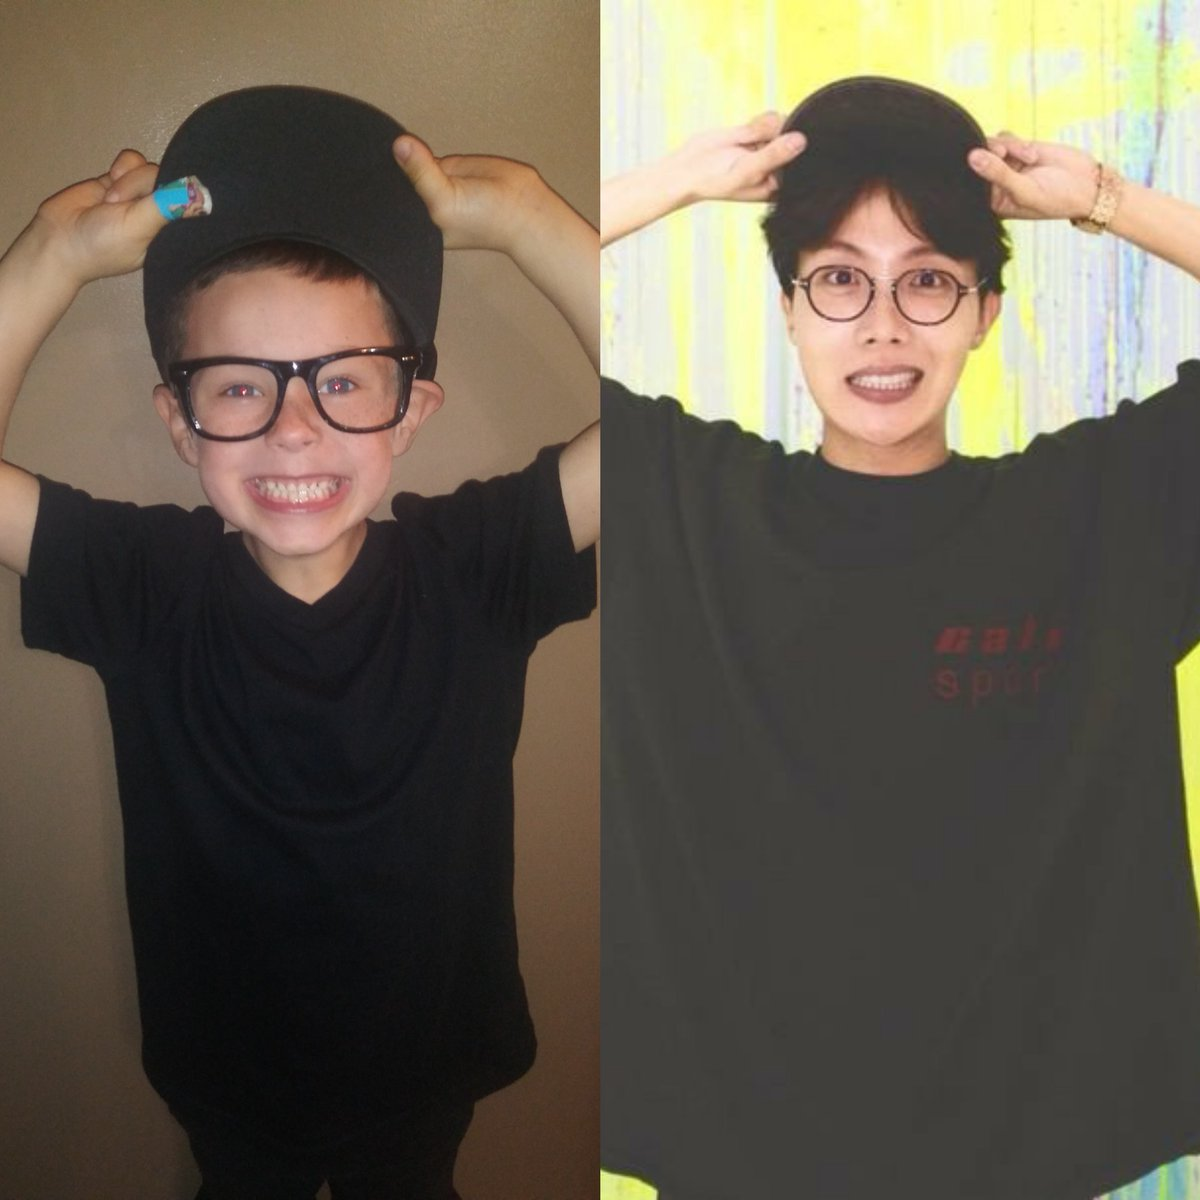 He got inspired by @mommy_tanya #jhopeboy love for J-Hope plus we all need some extra hope #JHOPE #junghoseok @BTS_twt #BTS #littleBTSArmy #BTSARMY #miniBTSstyle #miniBTSstylehacker #BoyWithLuv #BestMusicVideo #iHeartAwards<br>http://pic.twitter.com/P7HOTIP45Y